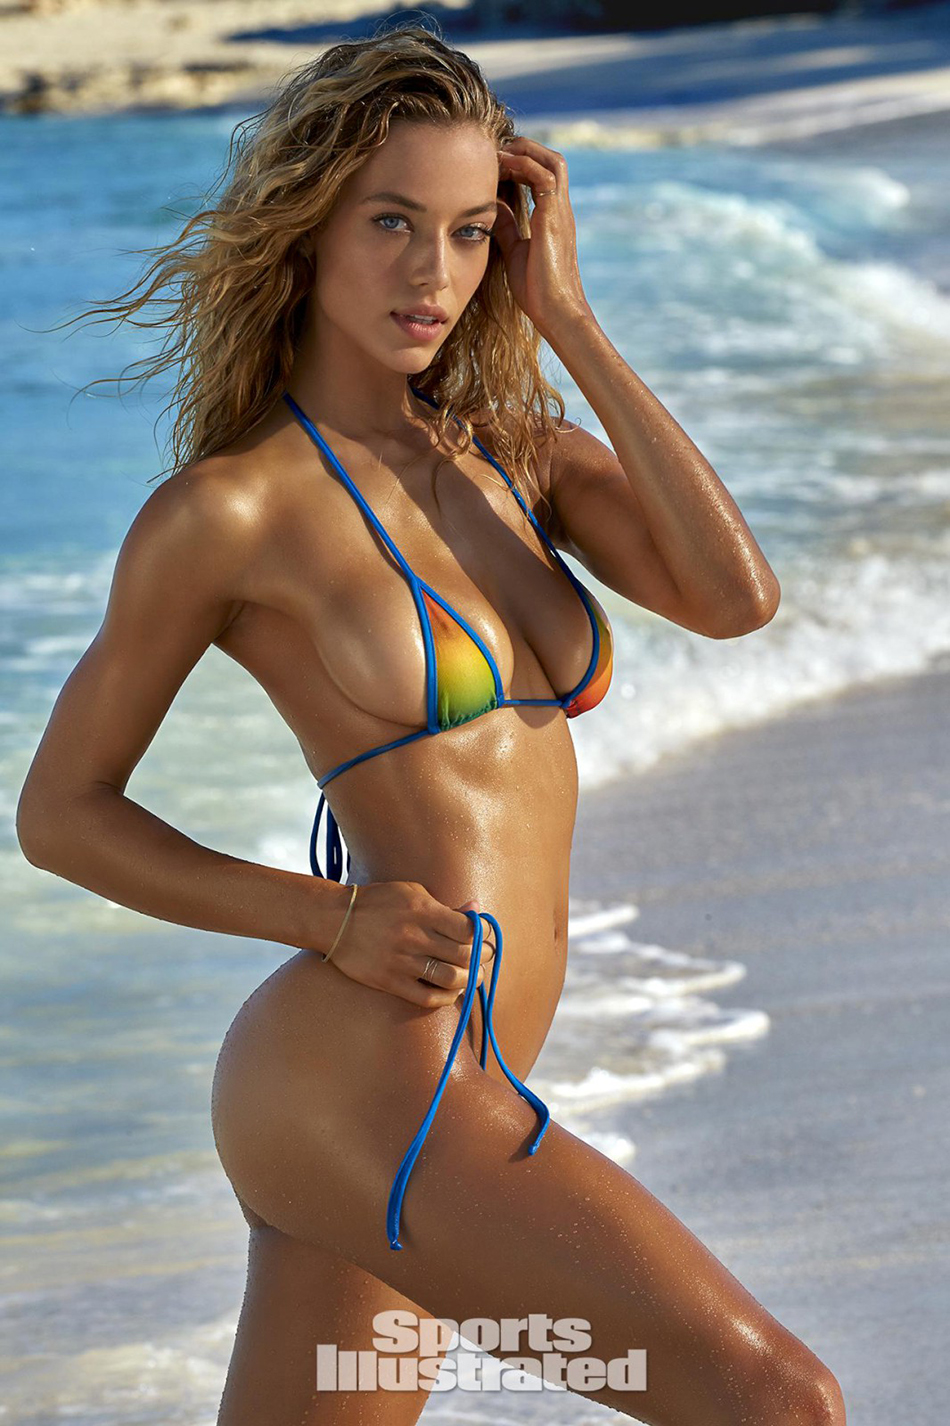 Apologise, but, sports illustrated swimsuit cover think, you